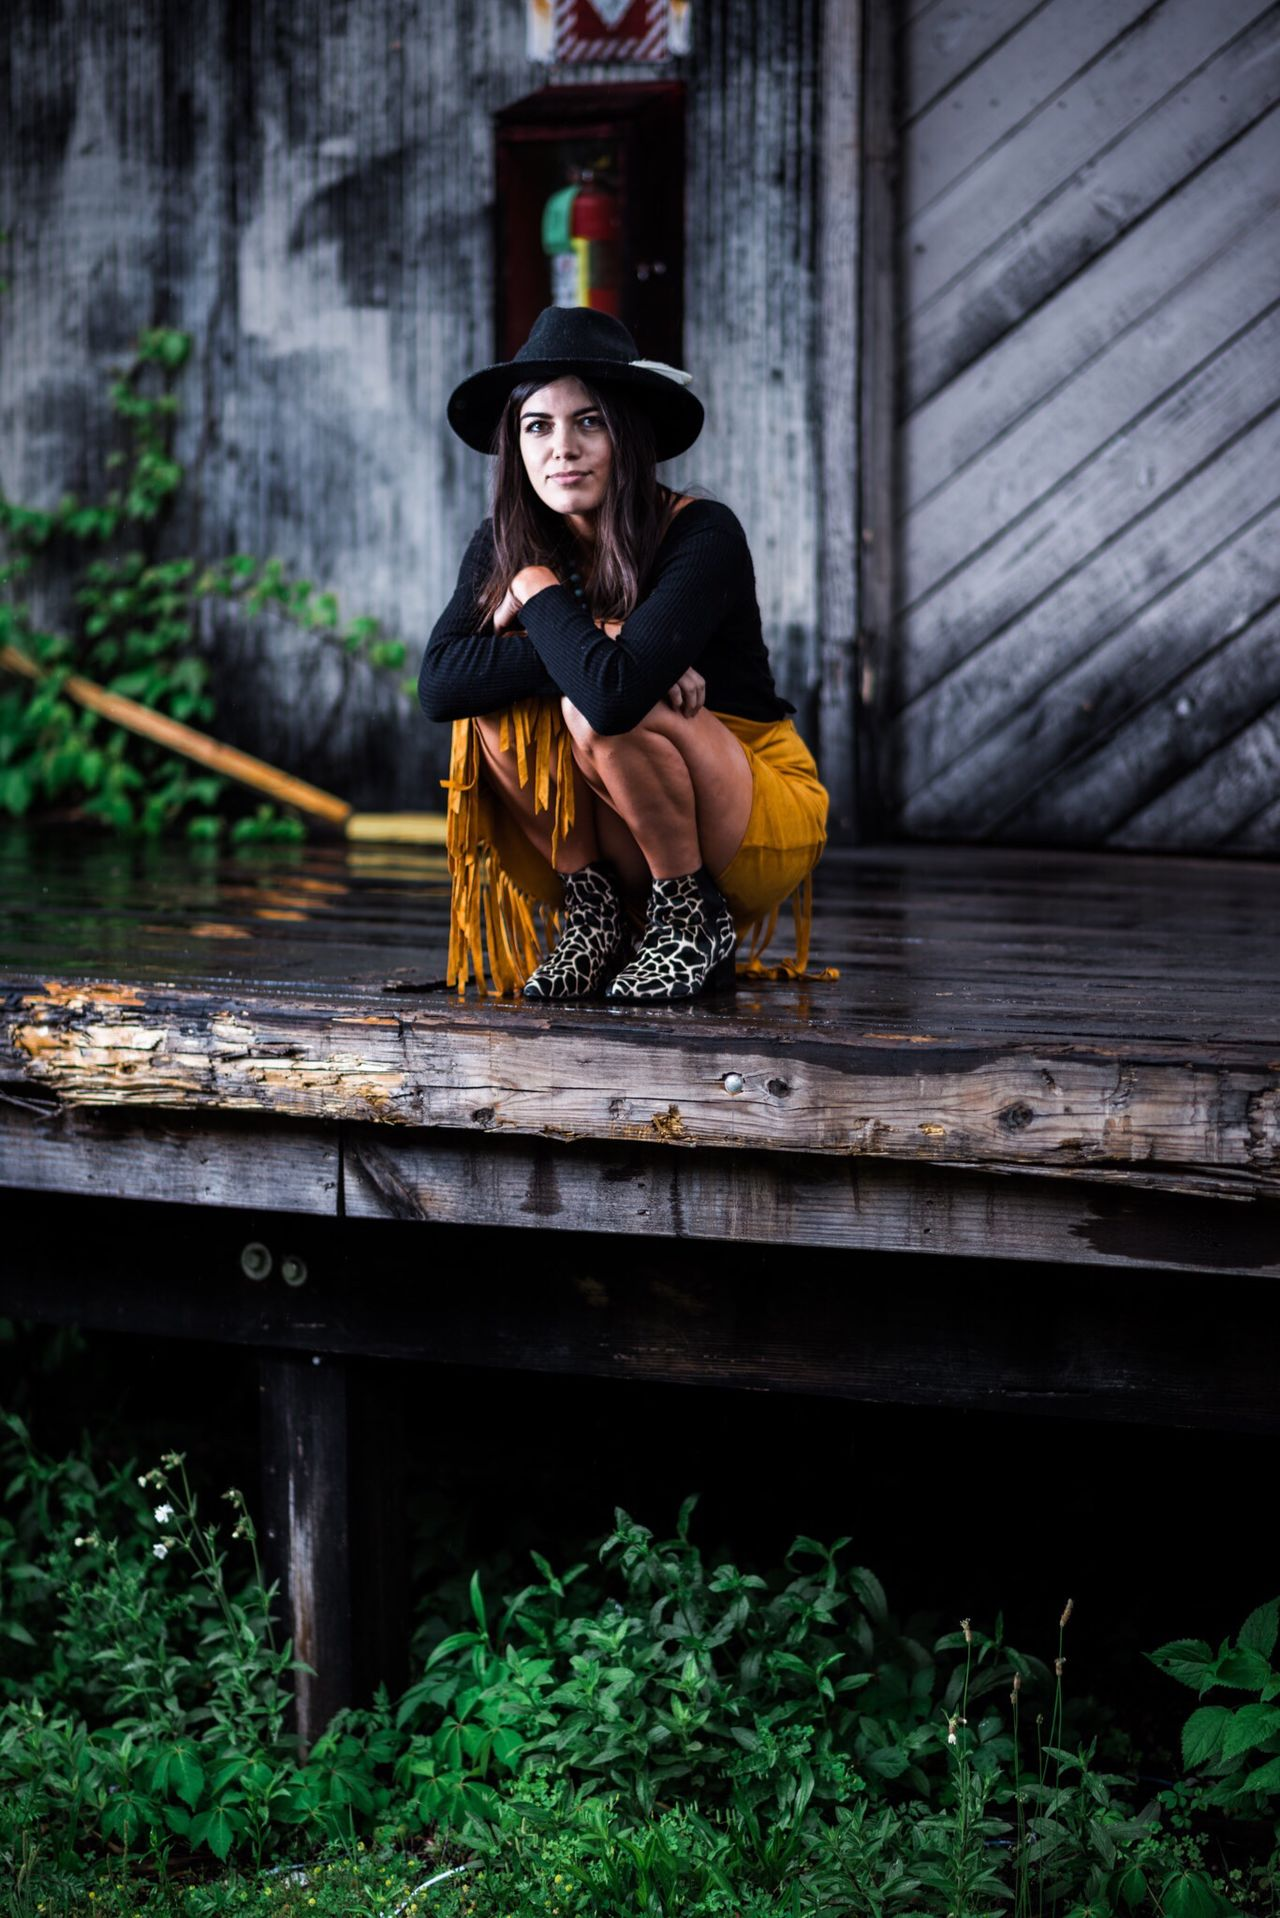 Beauty Wood - Material Only Women One Person Young Women Beautiful Woman Young Adult One Woman Only One Young Woman Only Beautiful People Adult Portrait Women Outdoors Adults Only People Sitting Portraits Portrait Of A Woman